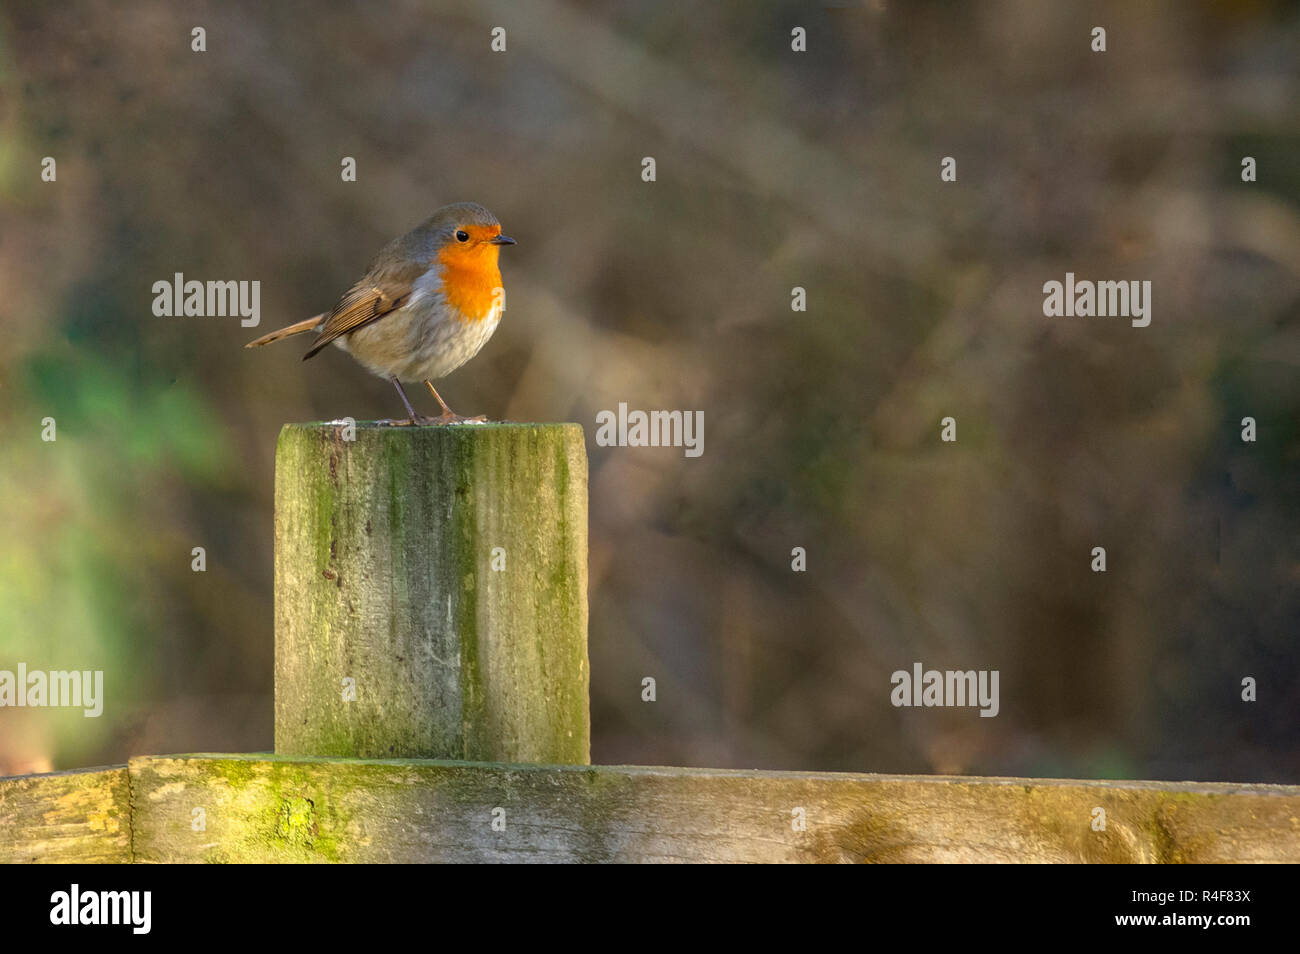 A robin (Erithacus rubecula) on a wooden post in low sunlight. - Stock Image